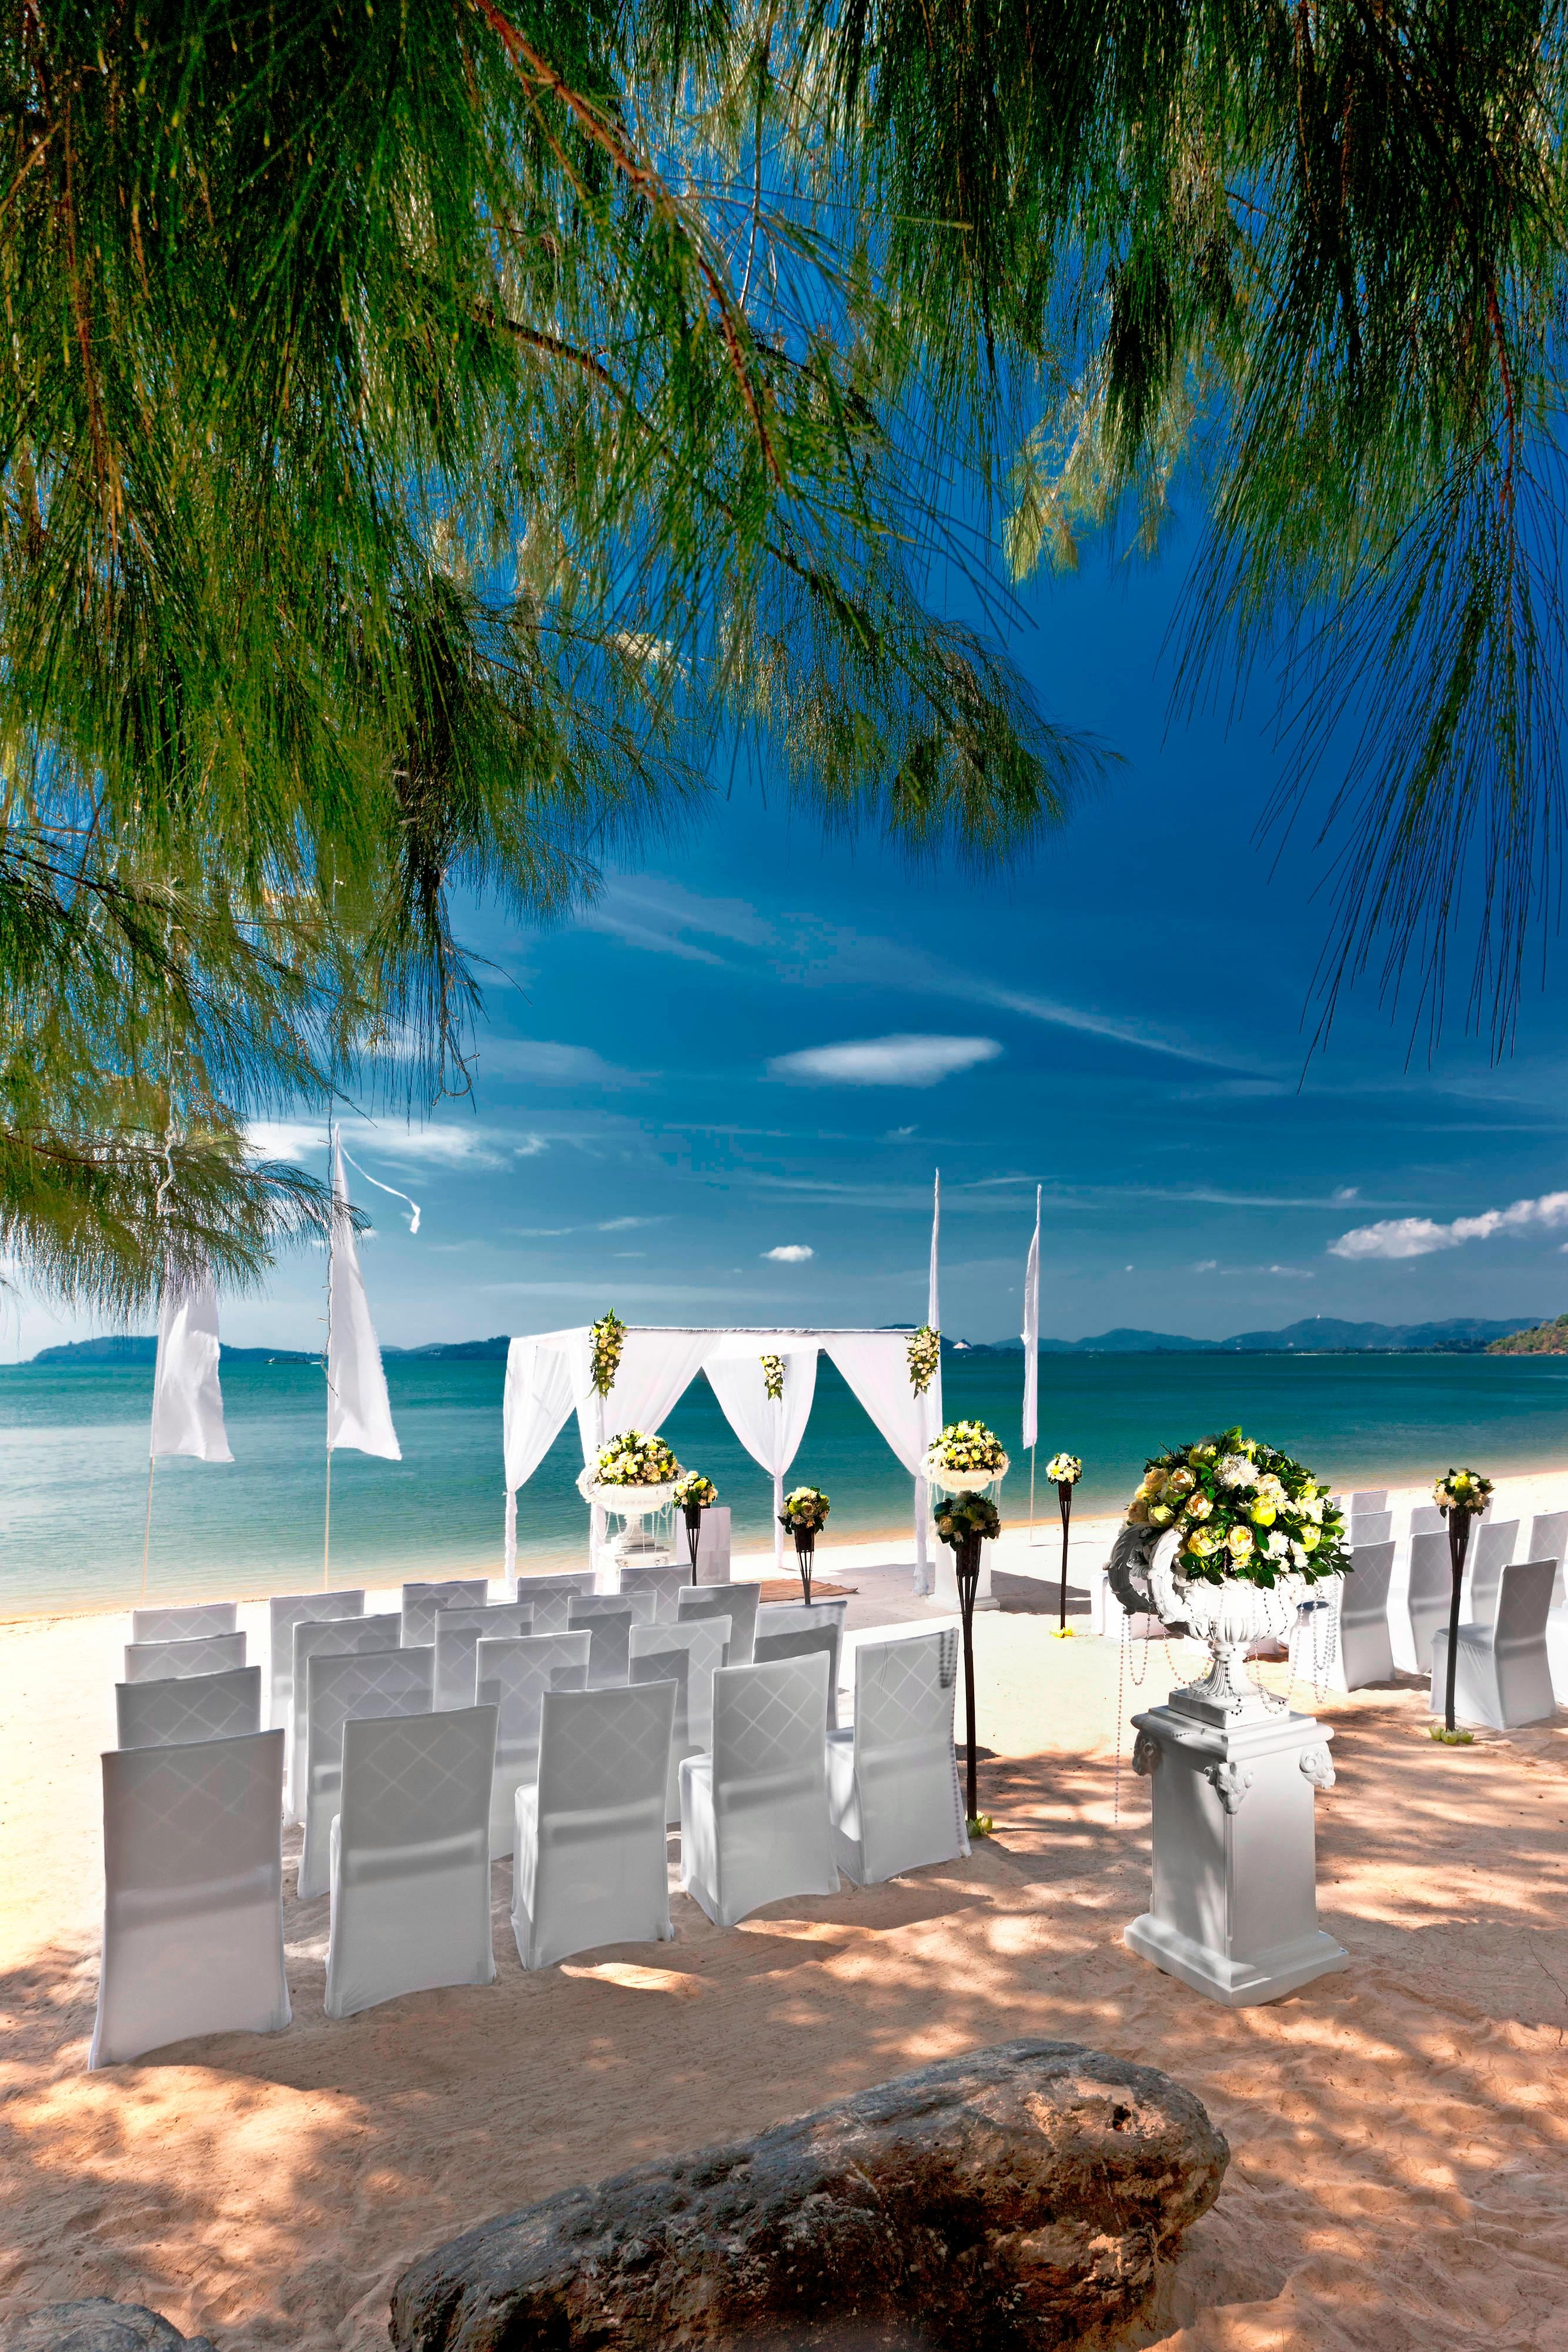 Beach Wedding - Ceremonyset up